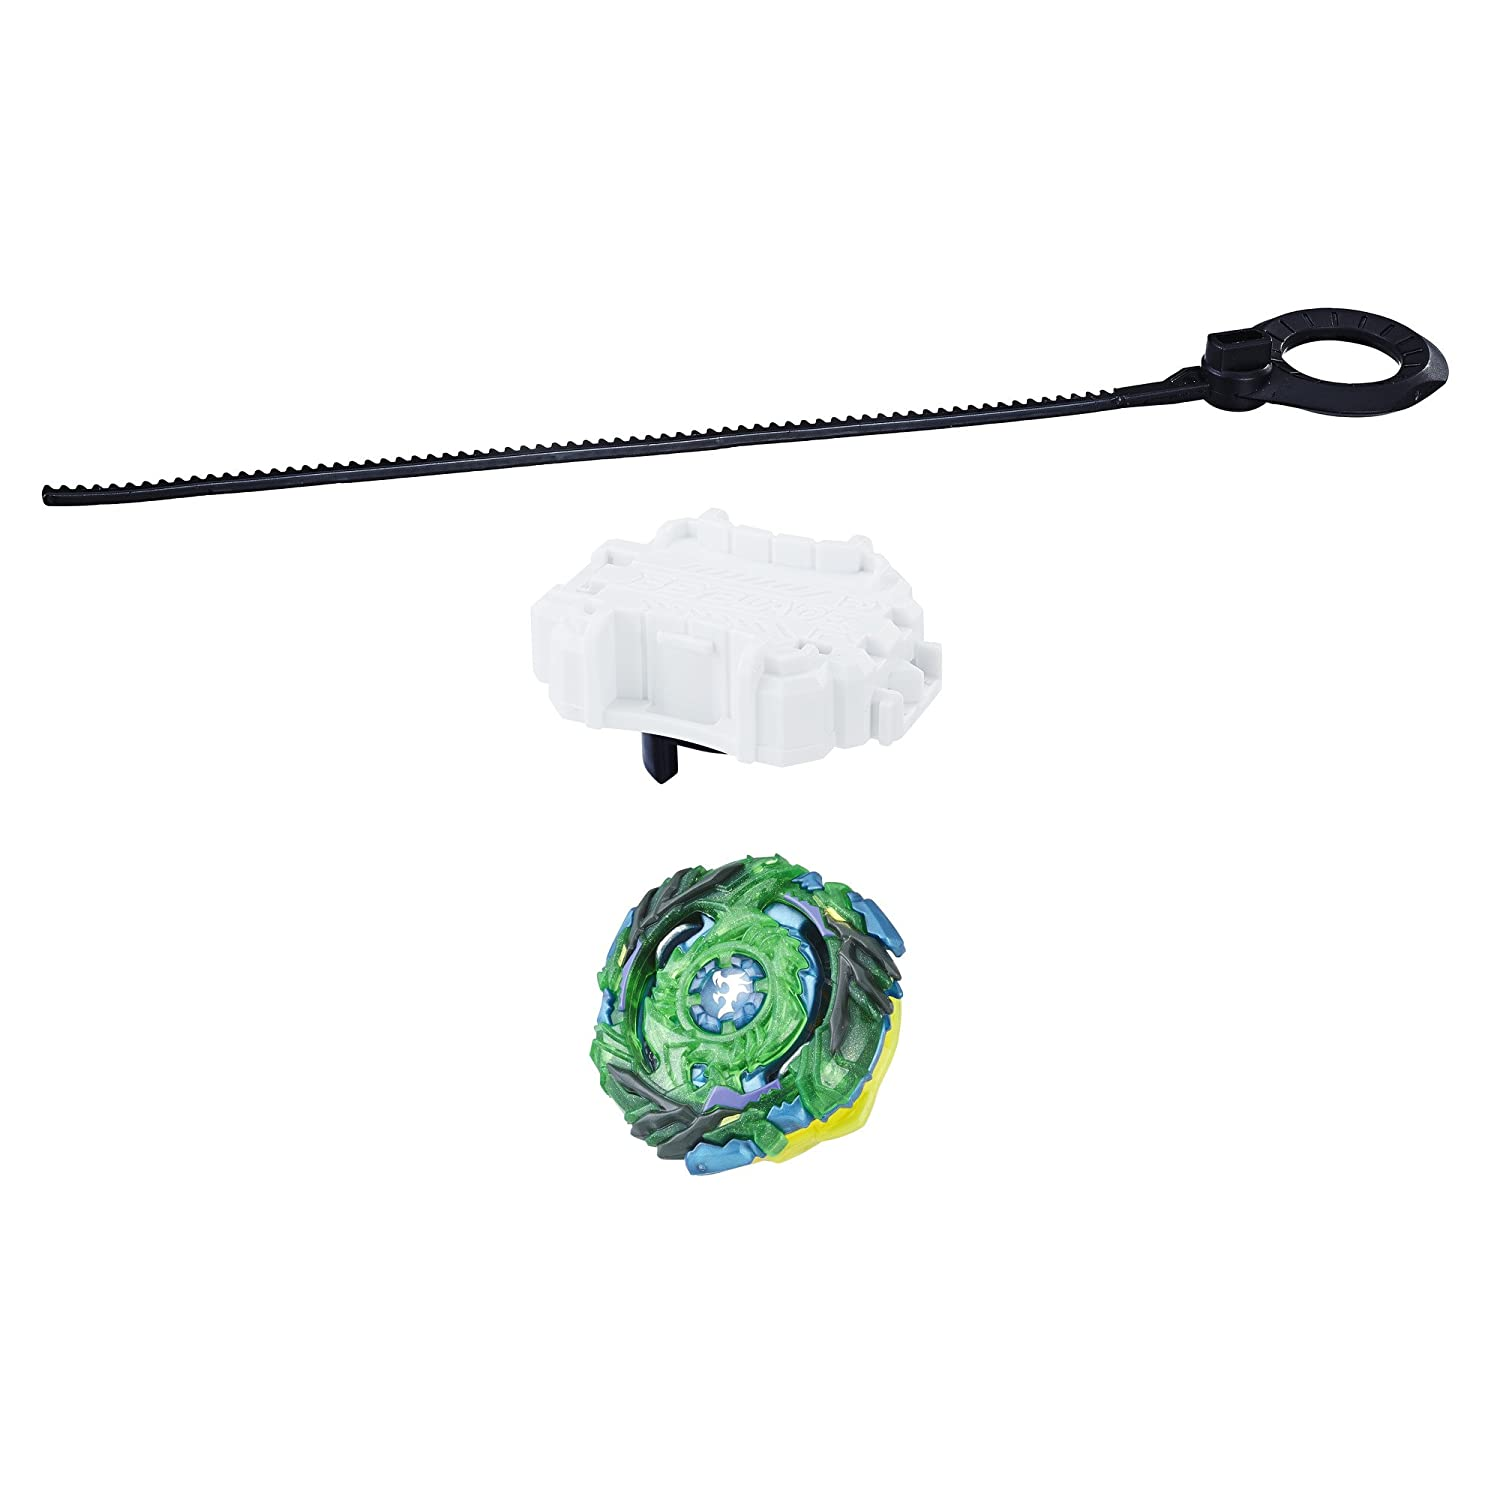 Beyblade Burst Evolution Switch Strike Fafnir F3 Hasbro Canada Corporation E1038